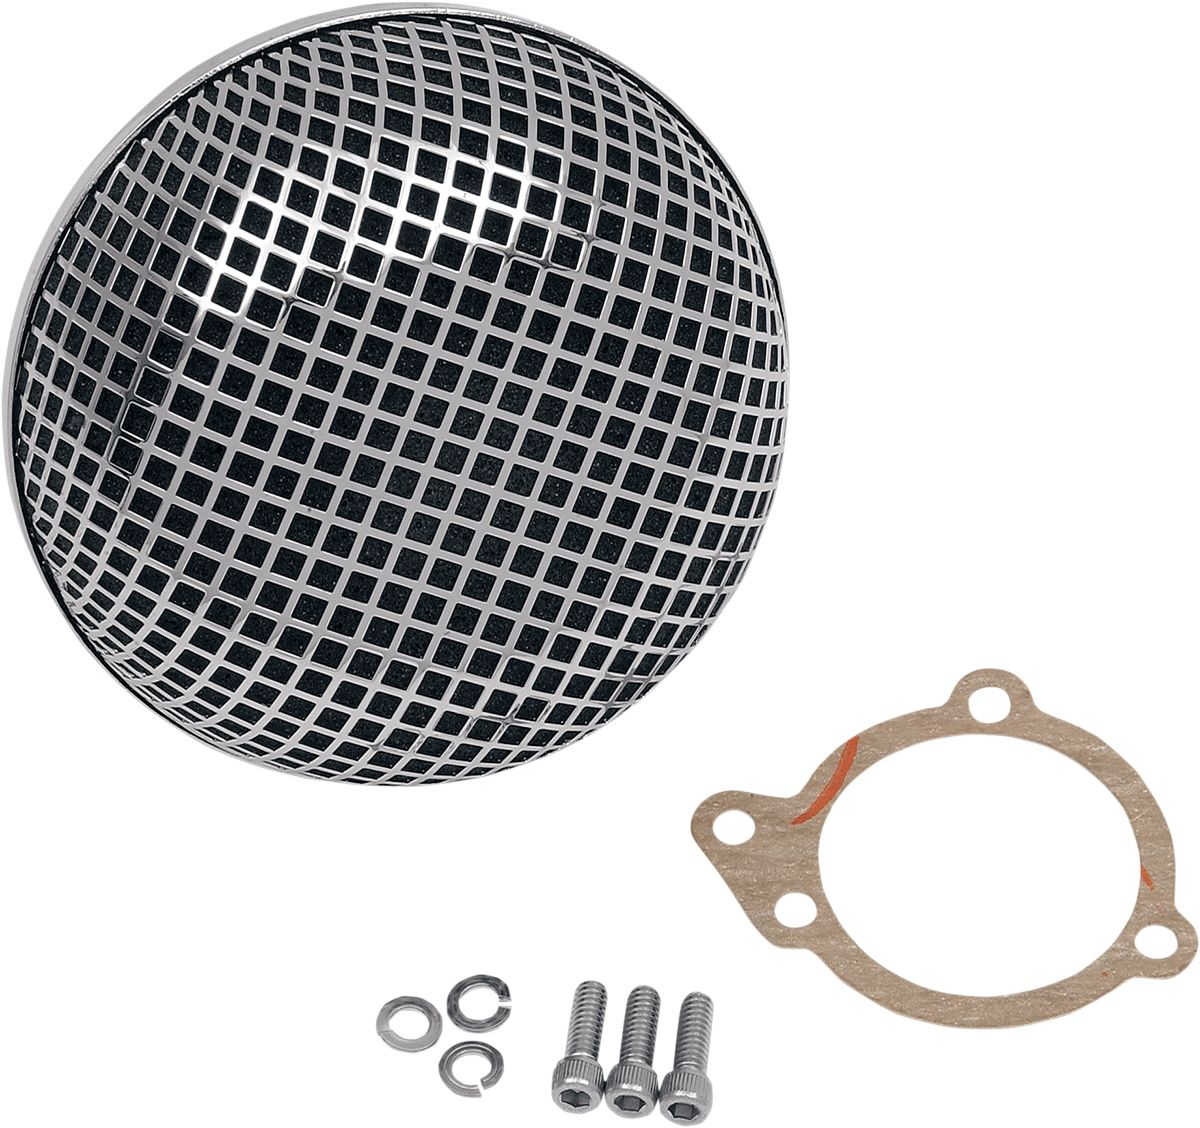 10100192 - DRAG SPECIALTIES AIR CLEANER BOB S&S E G